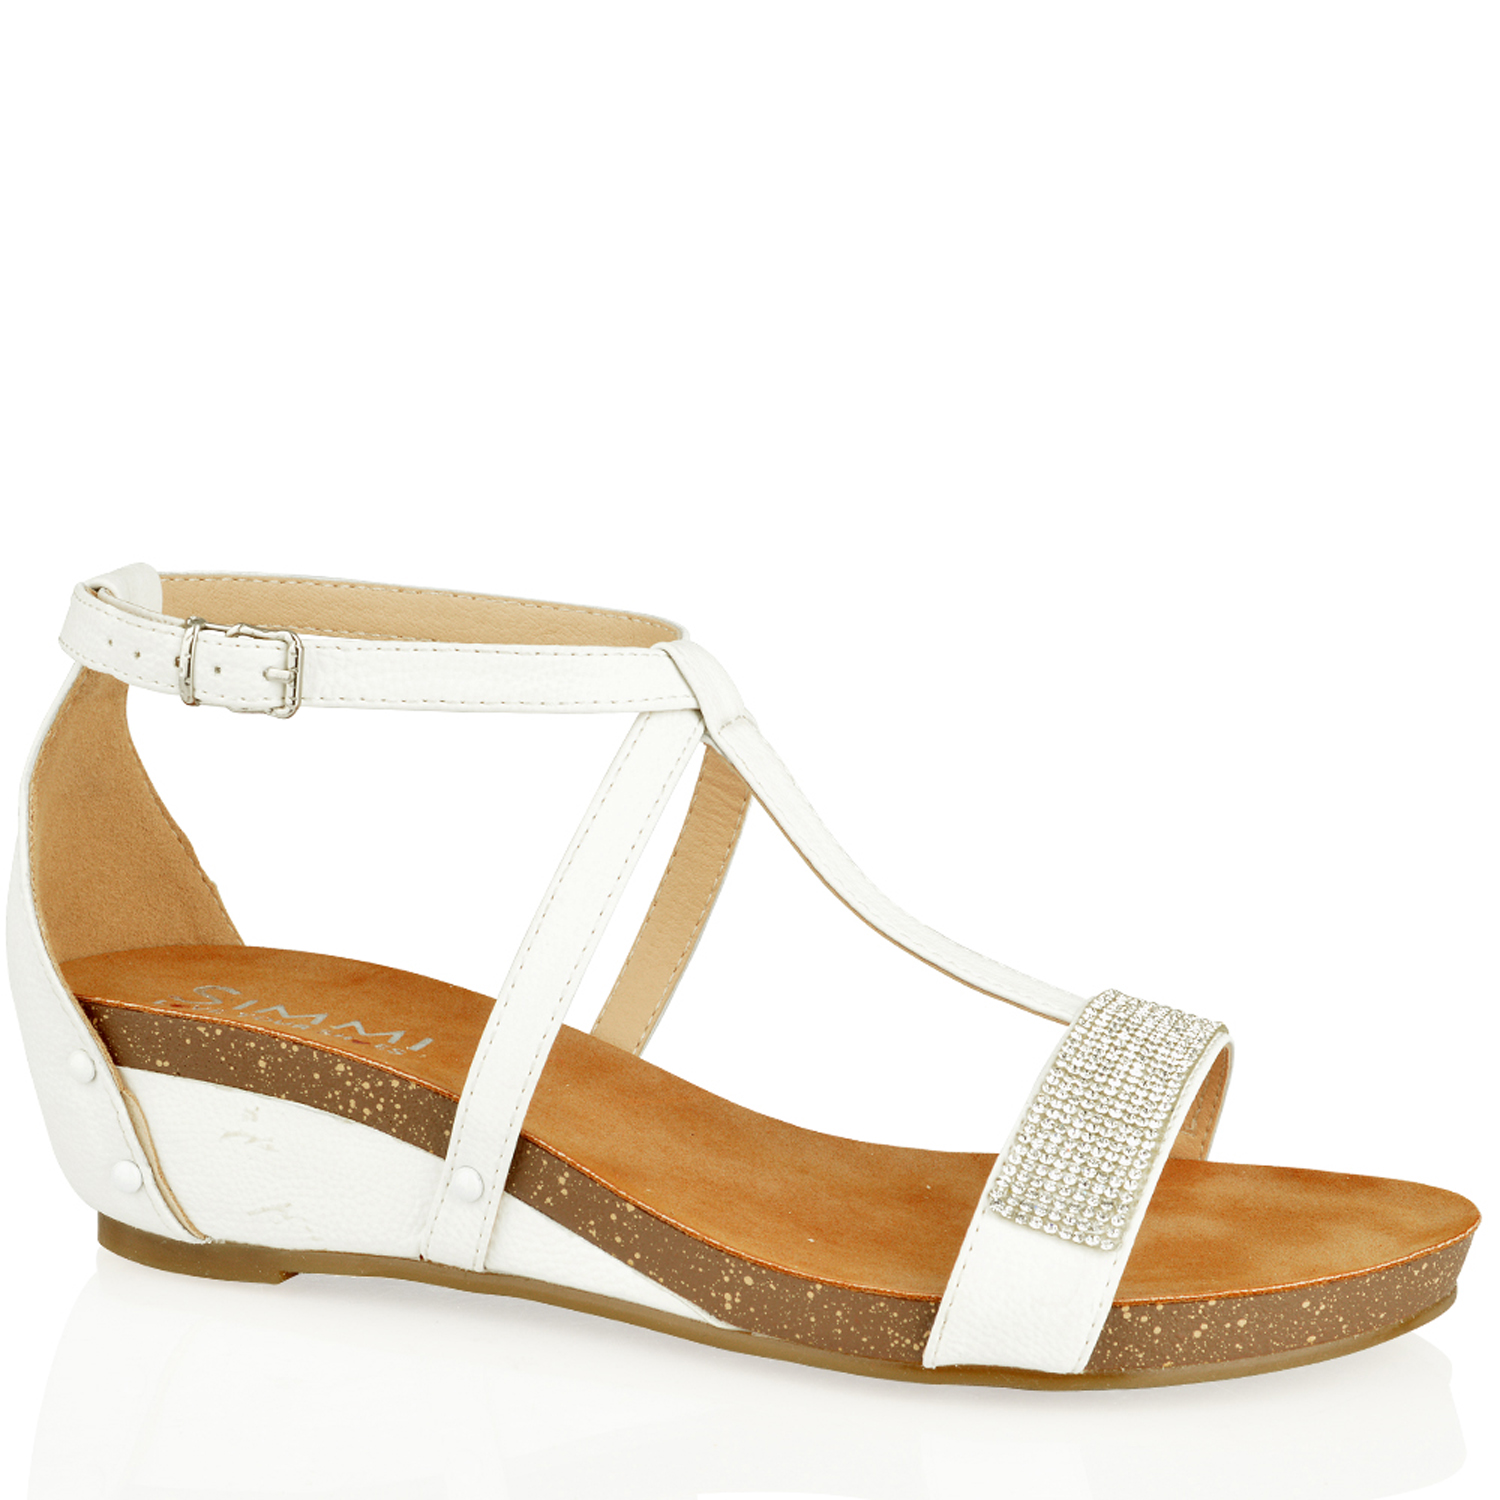 3b928b0b205 White Wedge Heel Sandals - Heels Zone